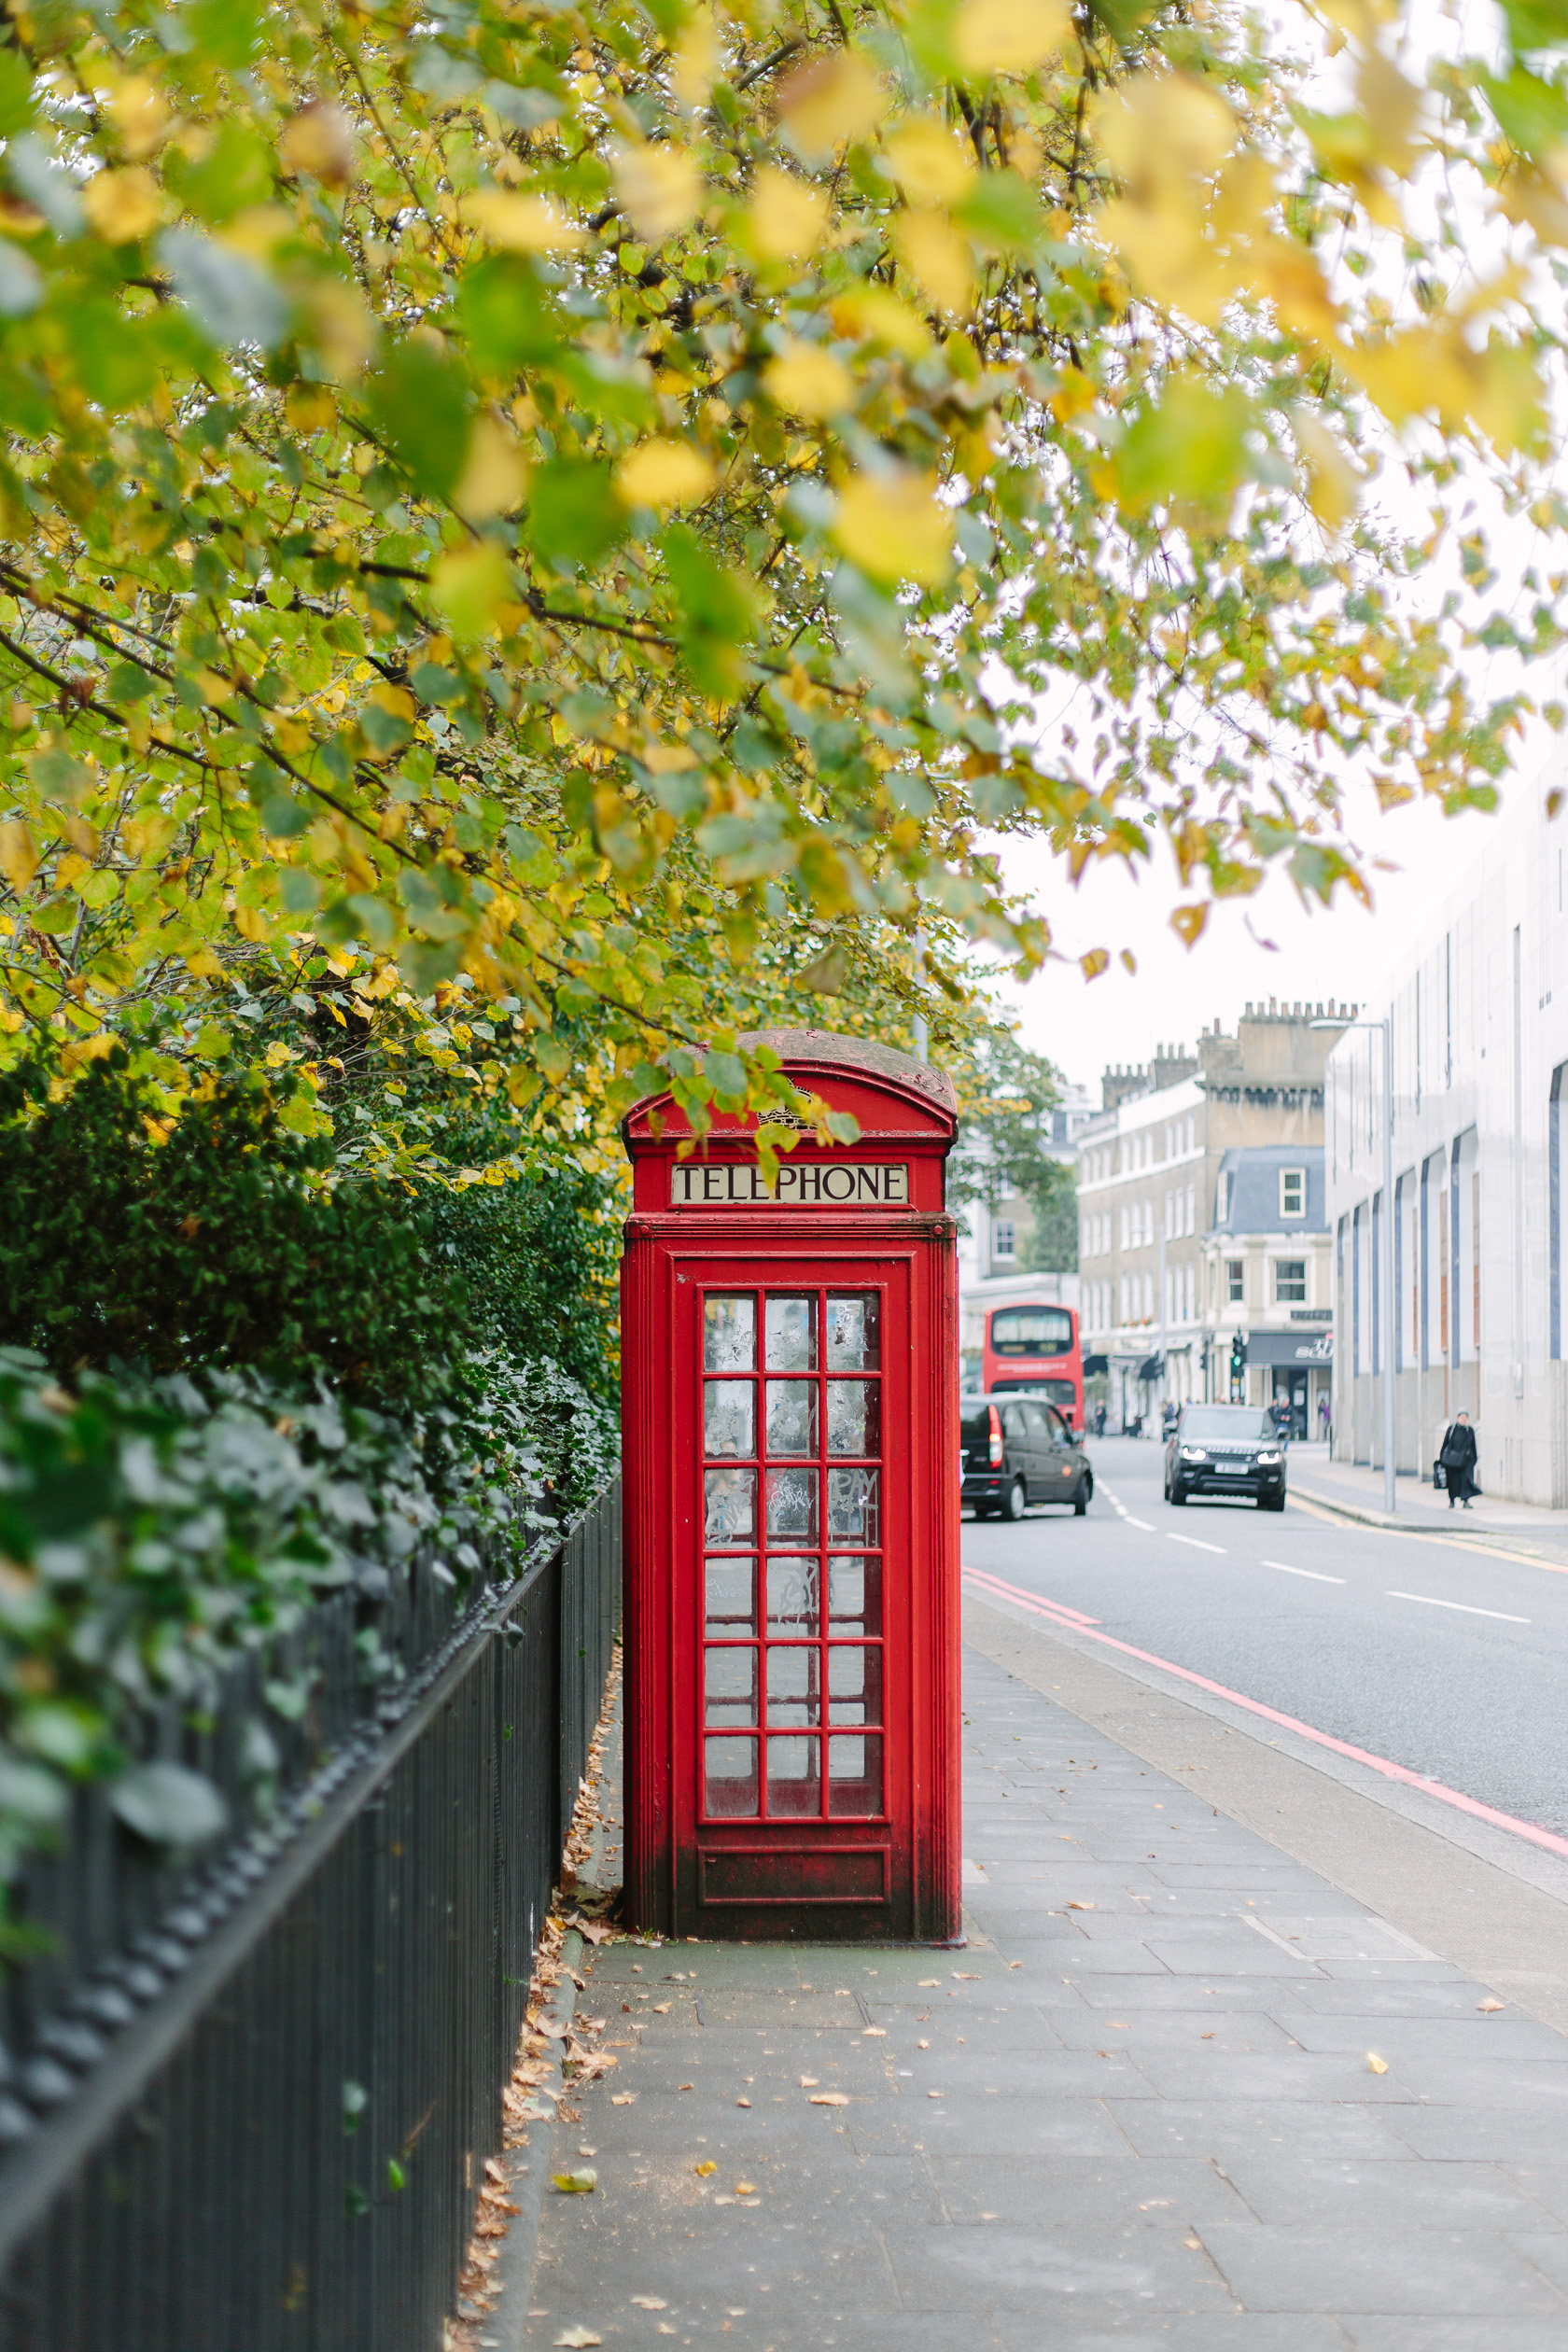 red-phone-booth-london-4570